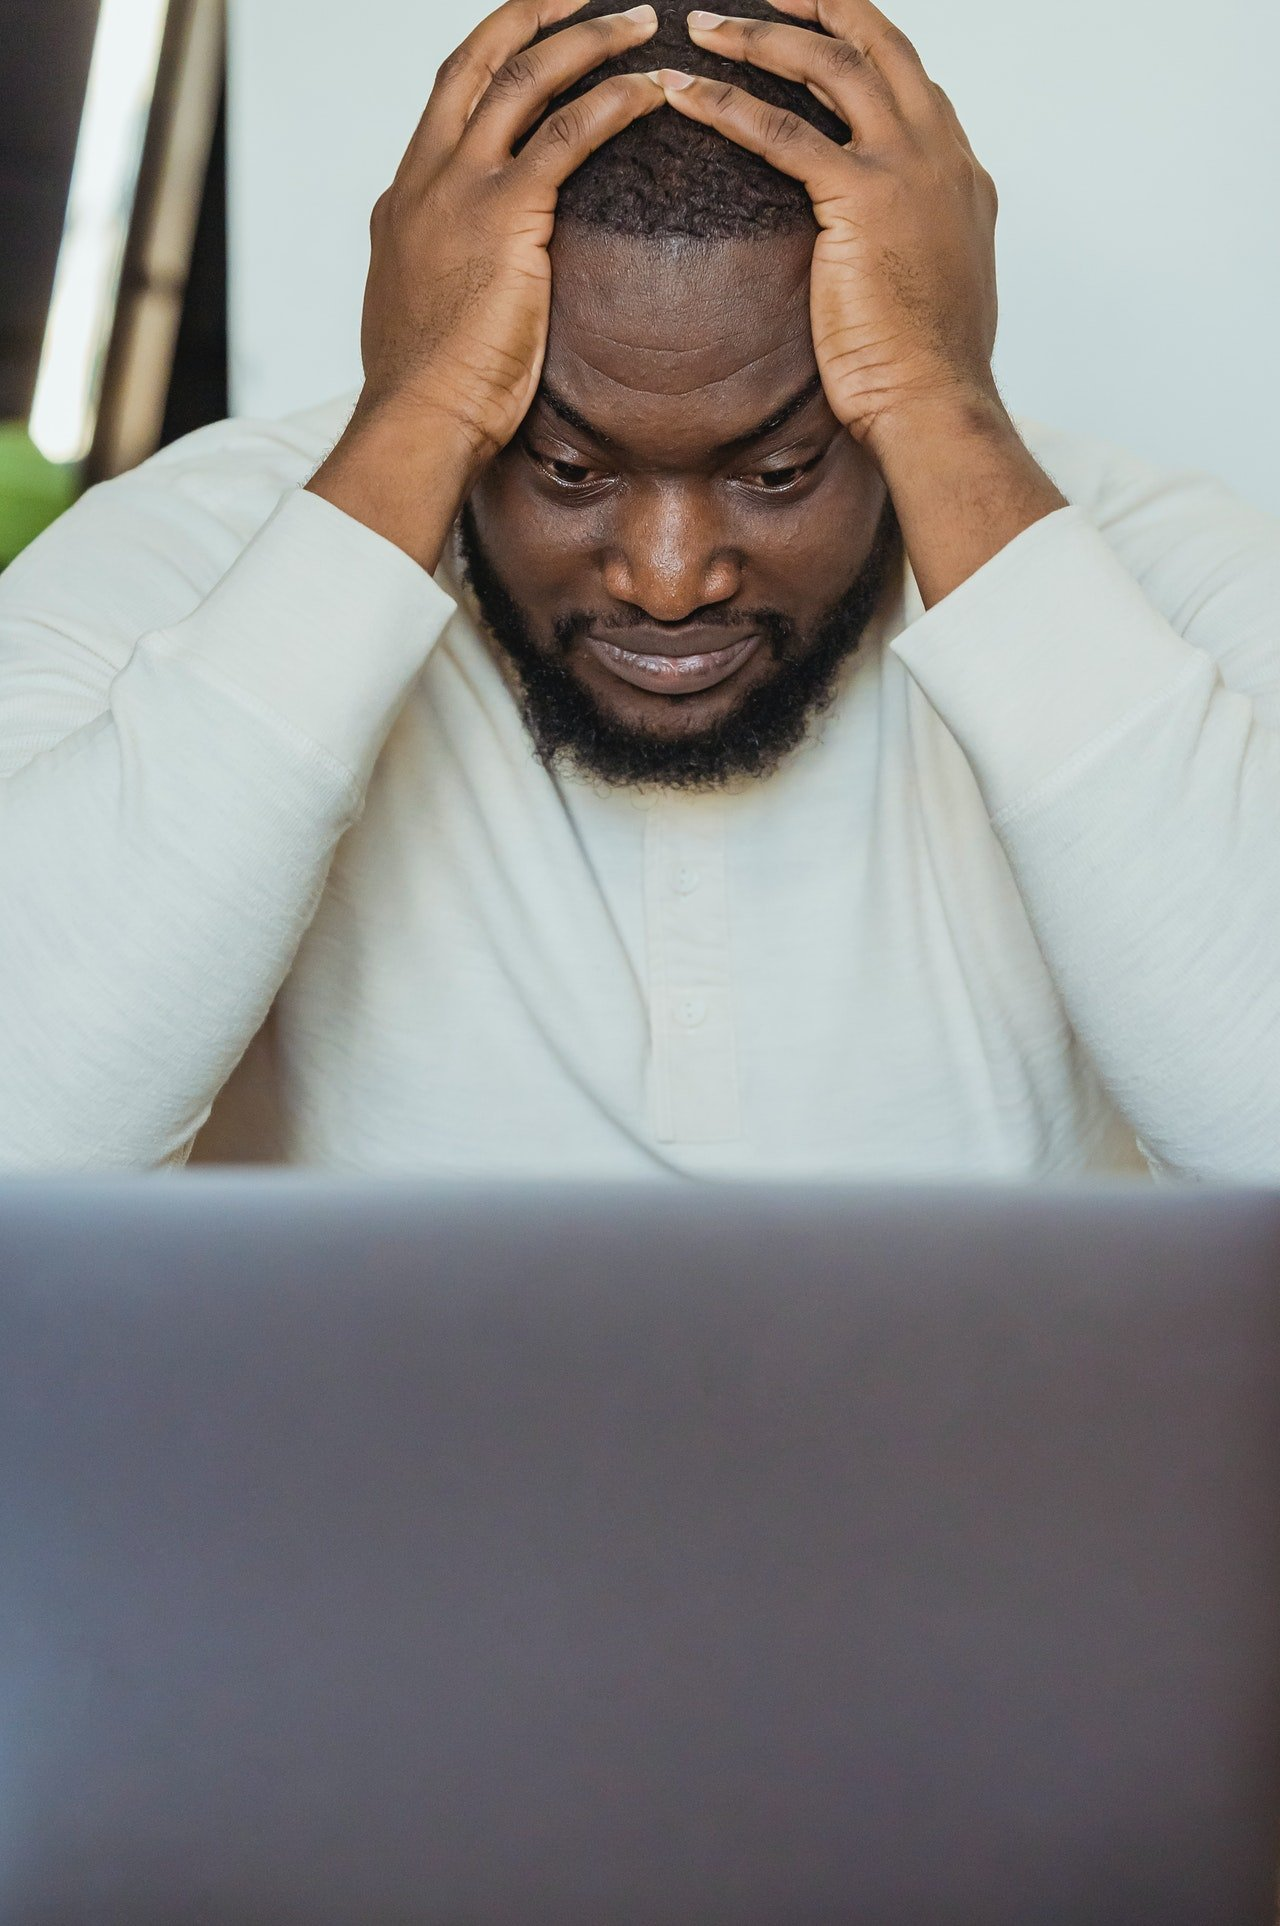 A frustrated man holding his head with both hands. | Source: Pexels